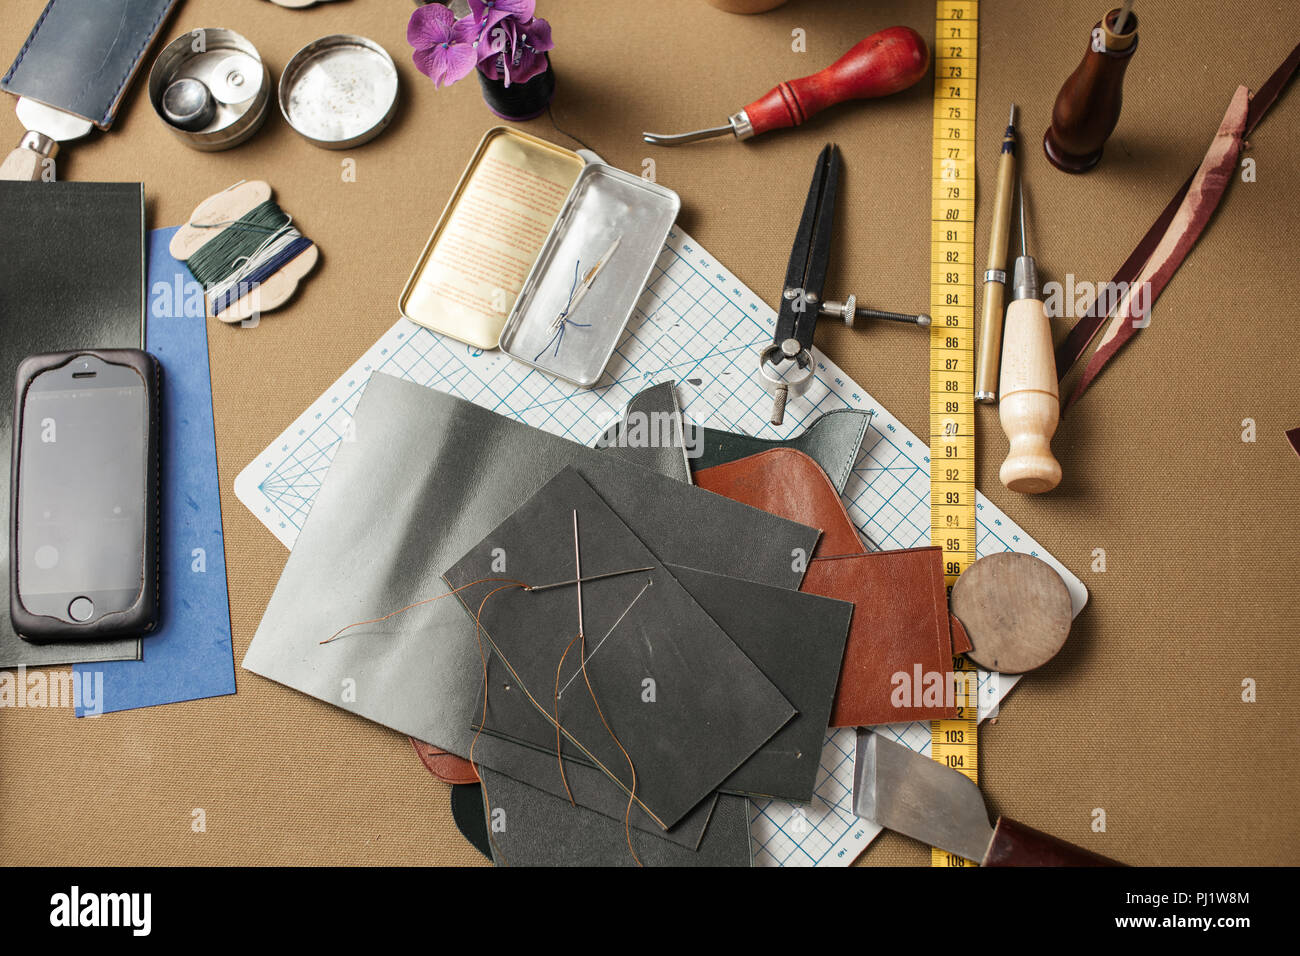 Set of leather craft tools on paper background. Workplace for shoemaker. - Stock Image